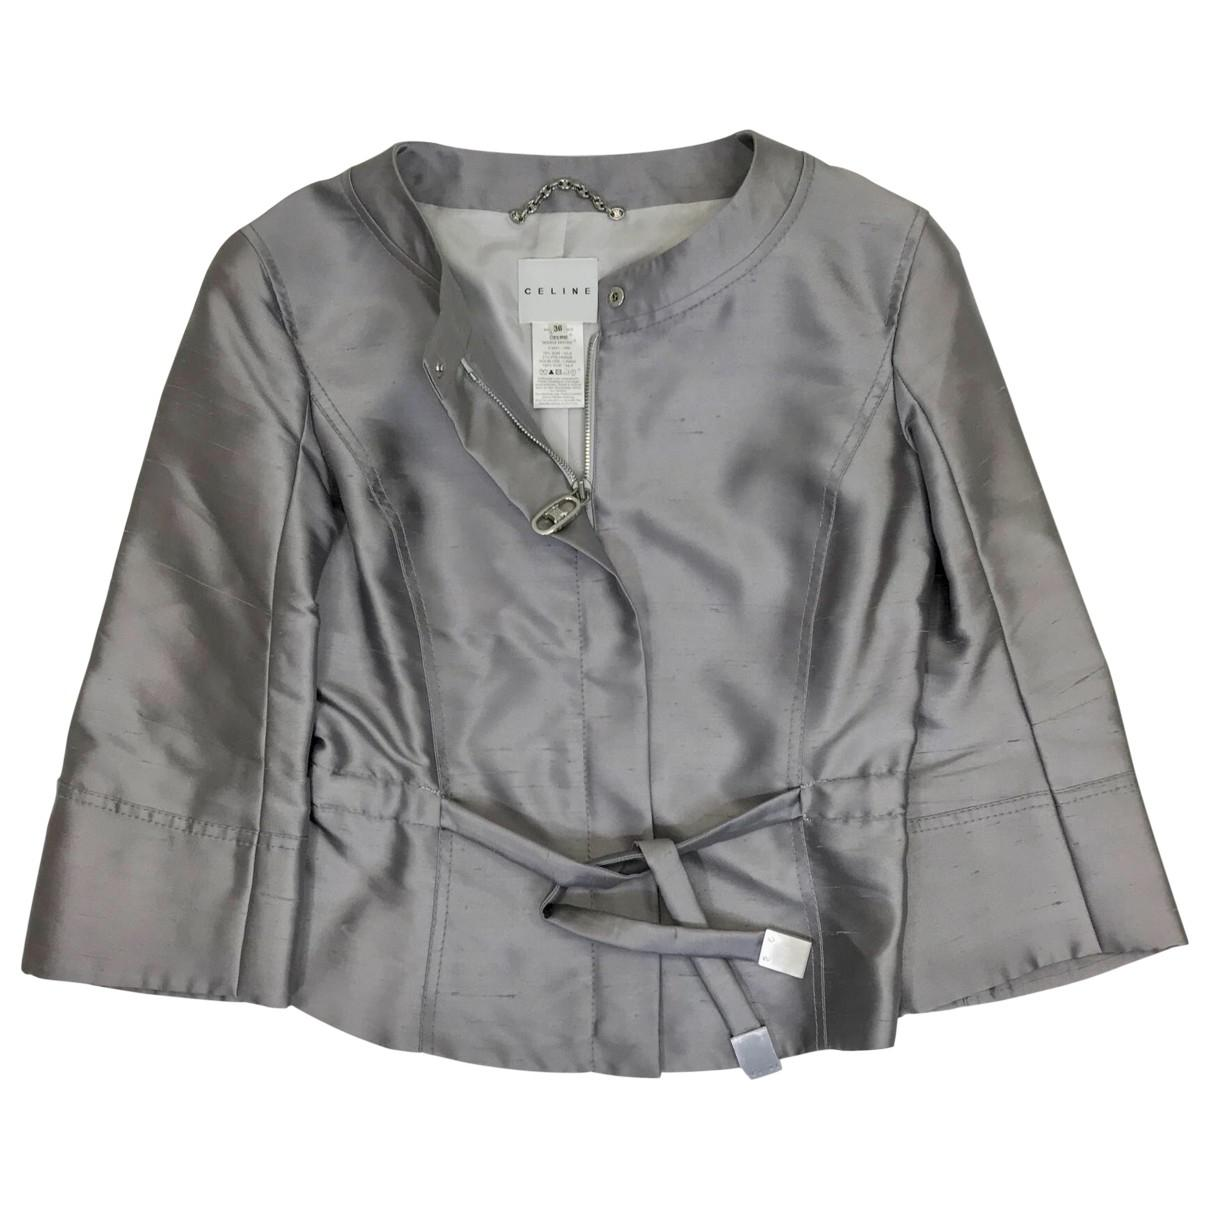 celine-Silver-Pre-owned-Silk-Jacket.jpeg